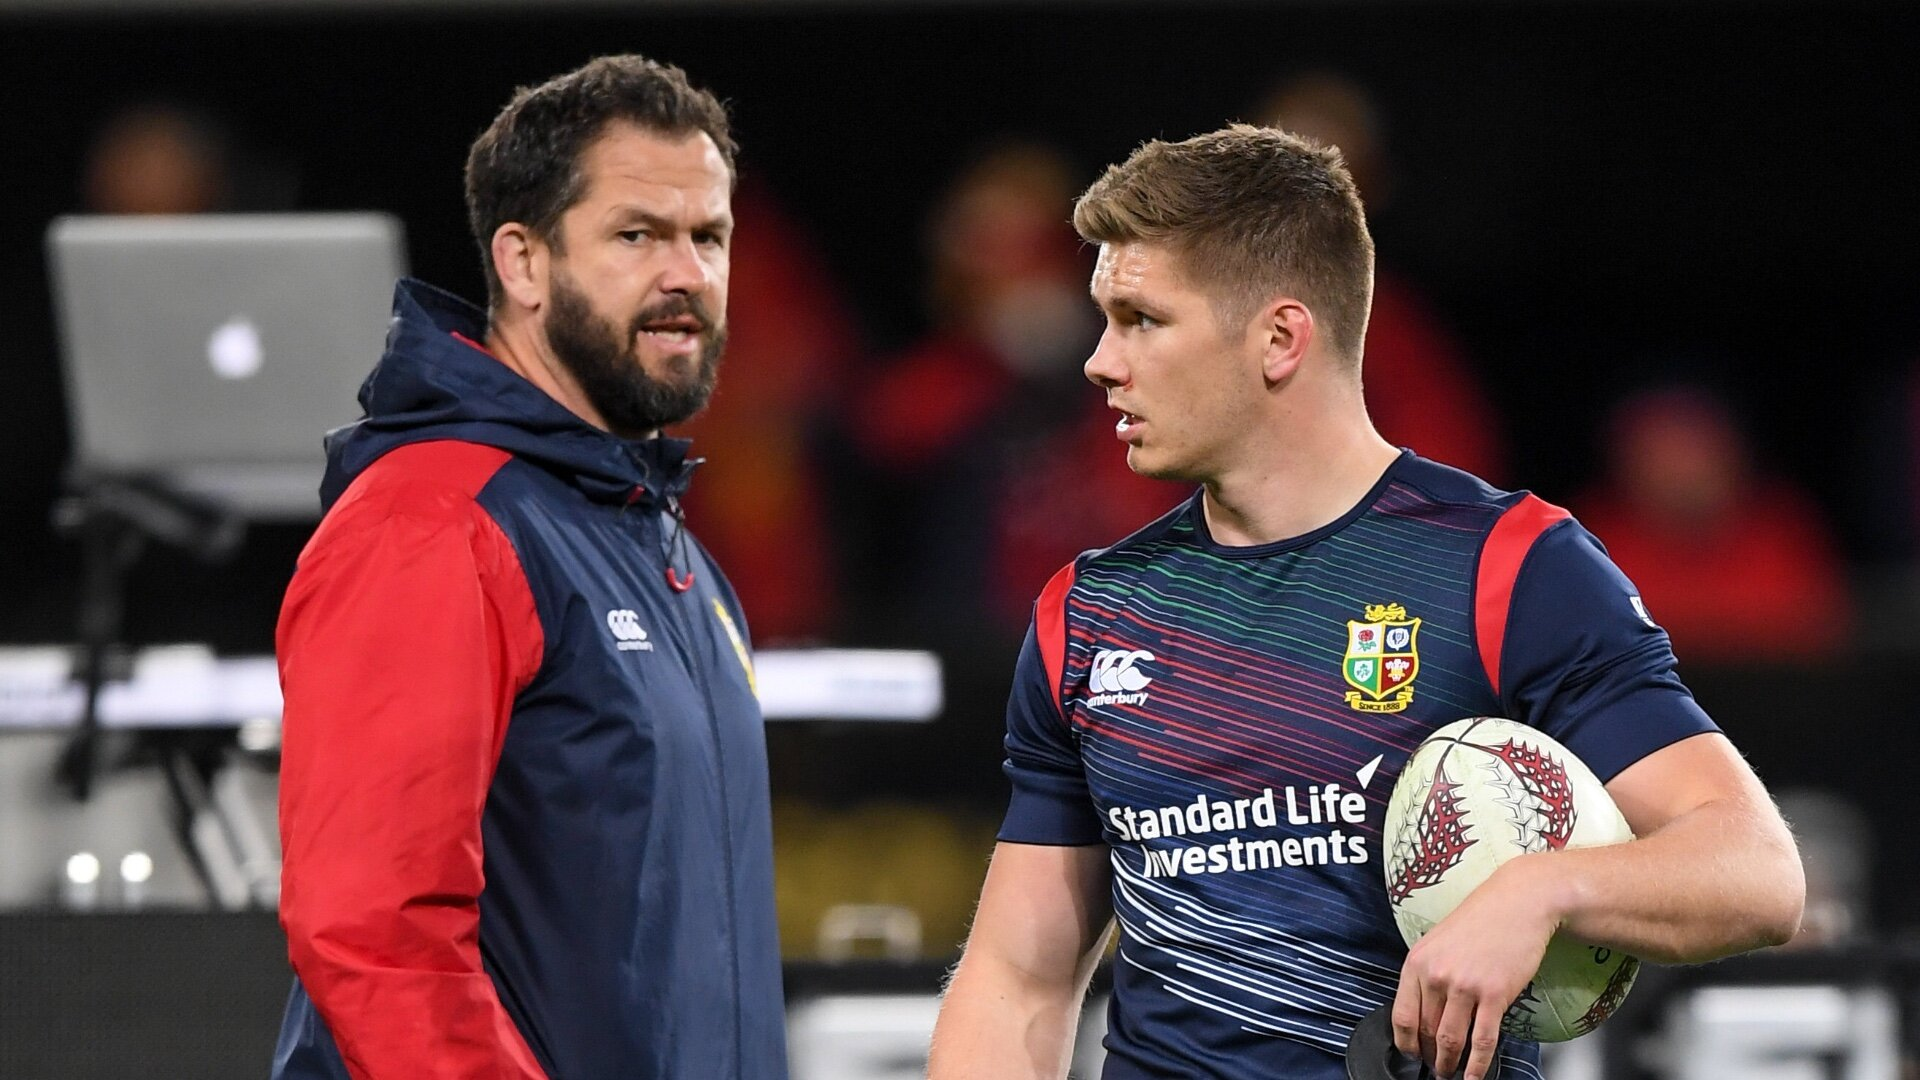 Lions squad could accommodate as few as 35 players, Ireland boss Farrell in frame for assistant's role